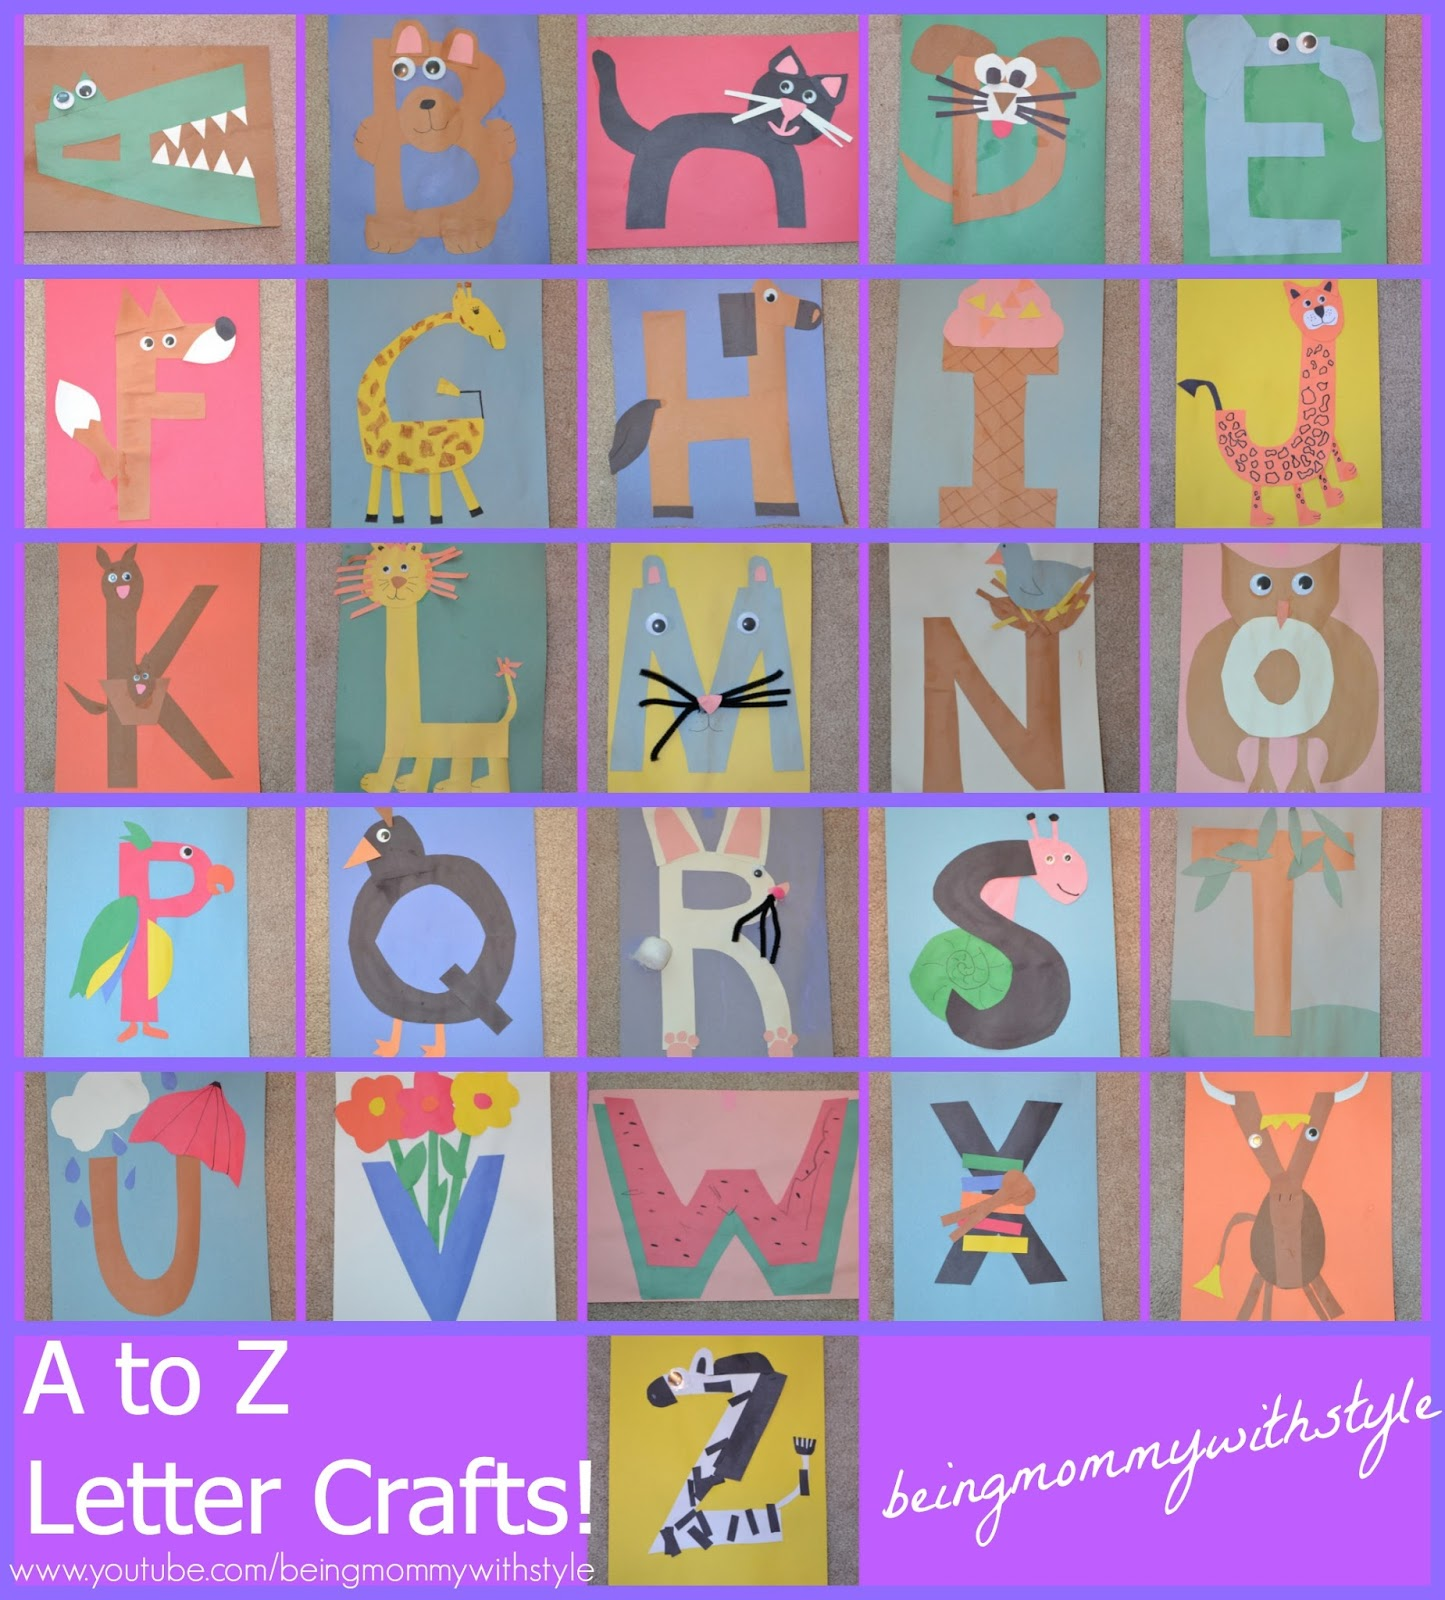 got a brand new bag preschool alphabet letter crafts a through z